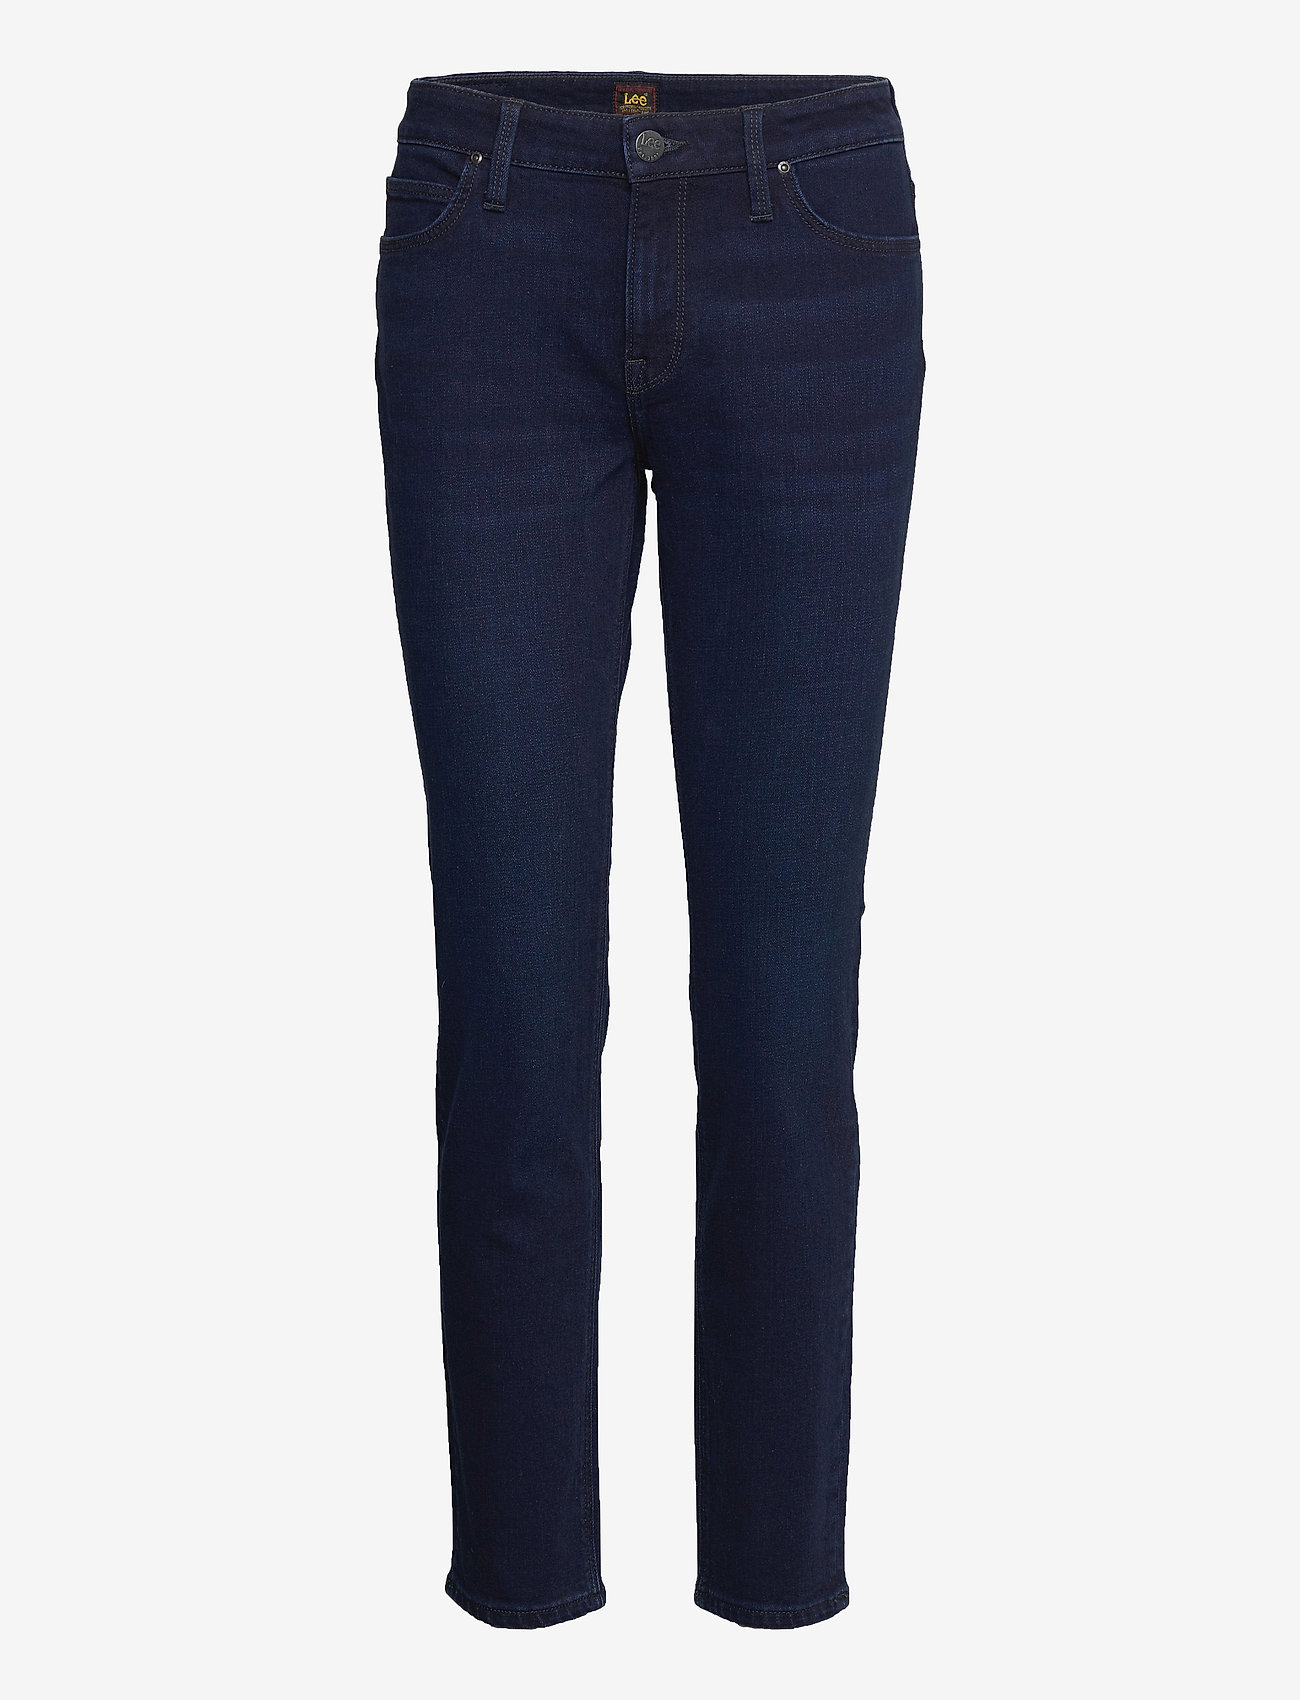 Lee Jeans - ELLY - slim jeans - washed cowes - 0